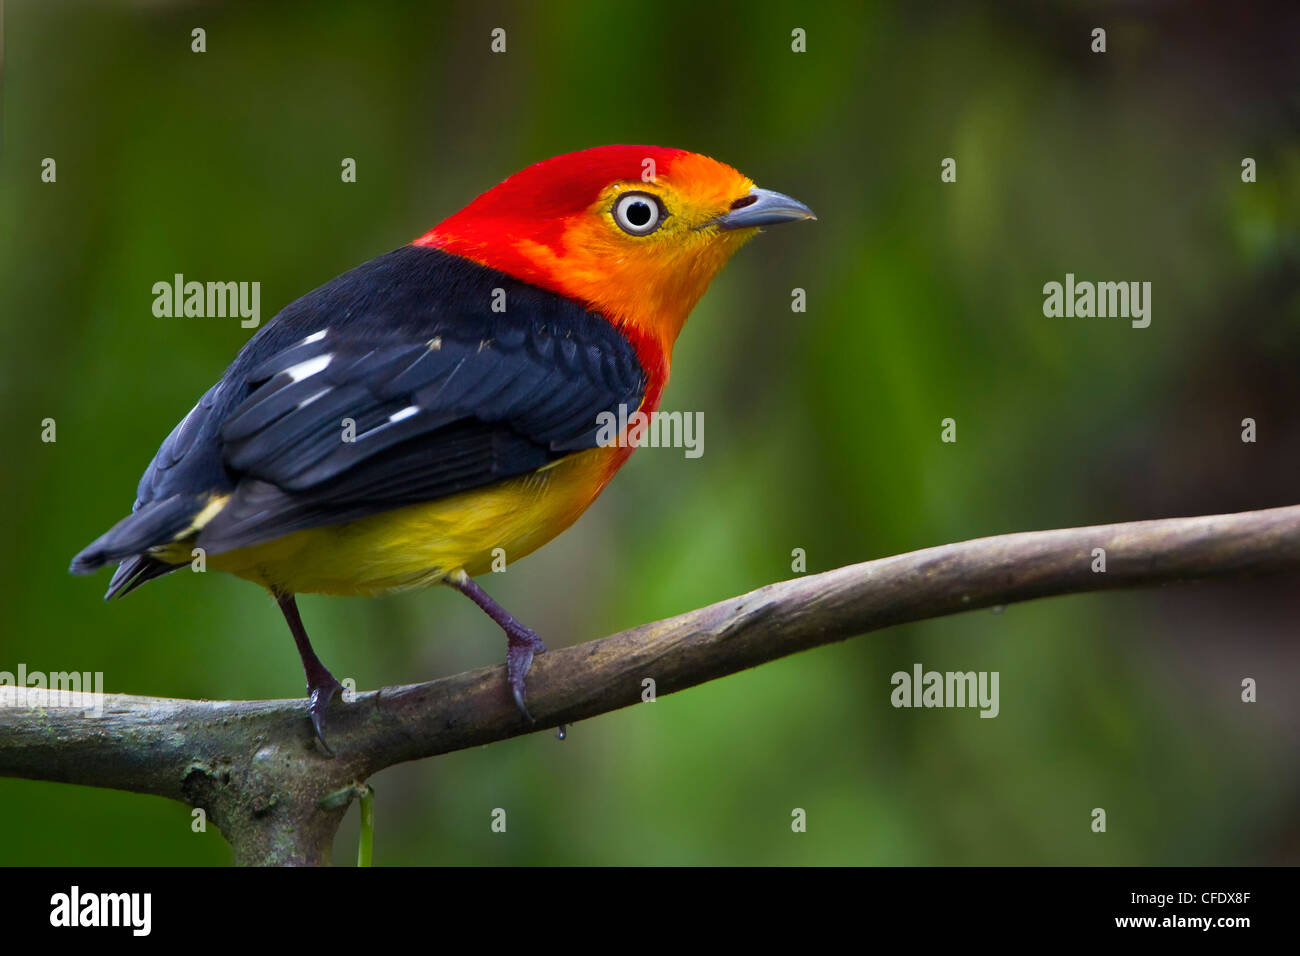 Band-tailed Manakin (Pipra fasciicauda) in Peru - Stock Image